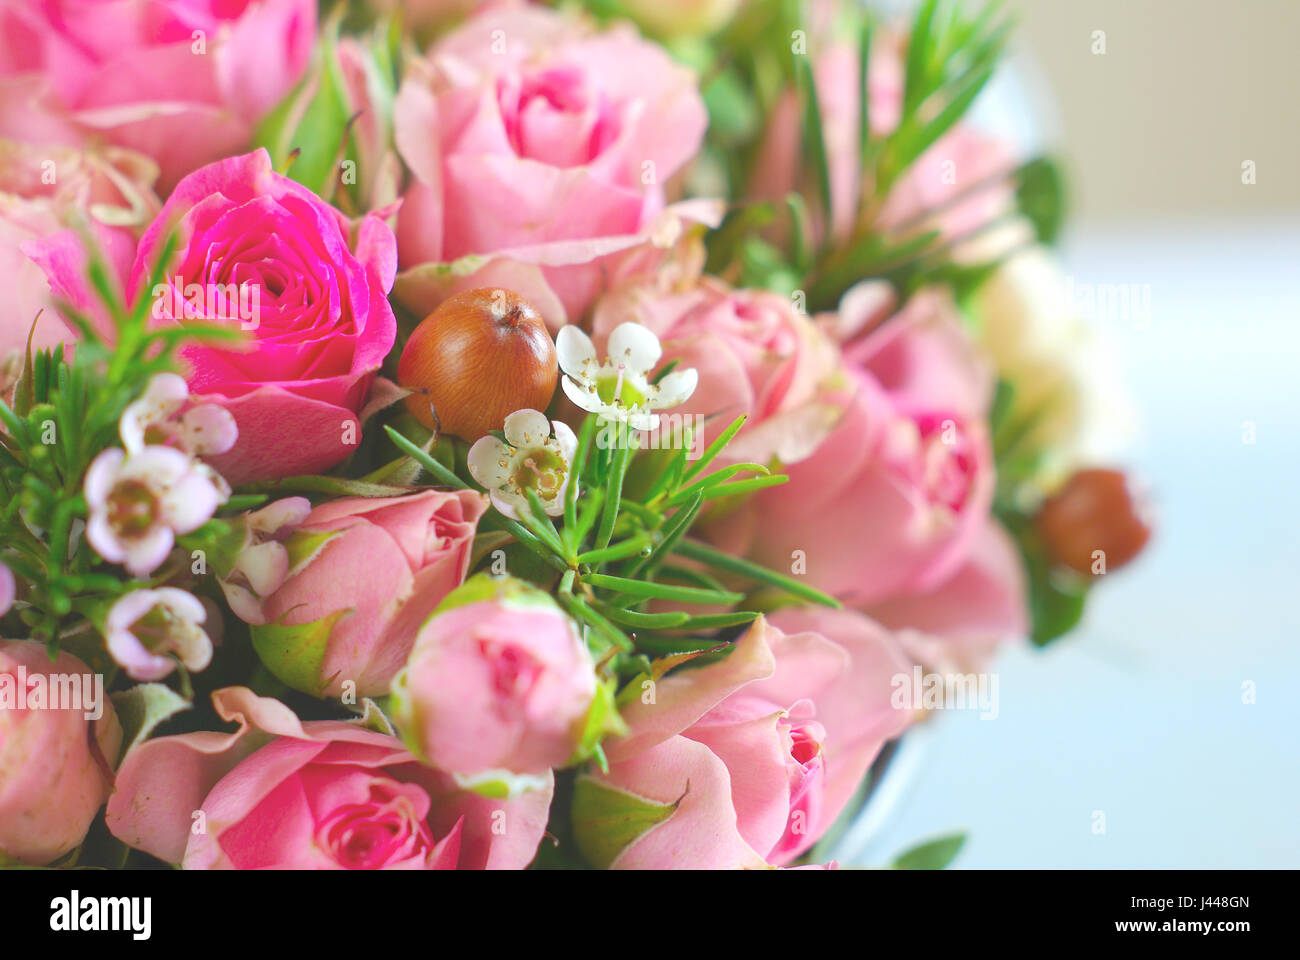 Red Pink Rose Small White Flowers Romantic Background Stock Photo